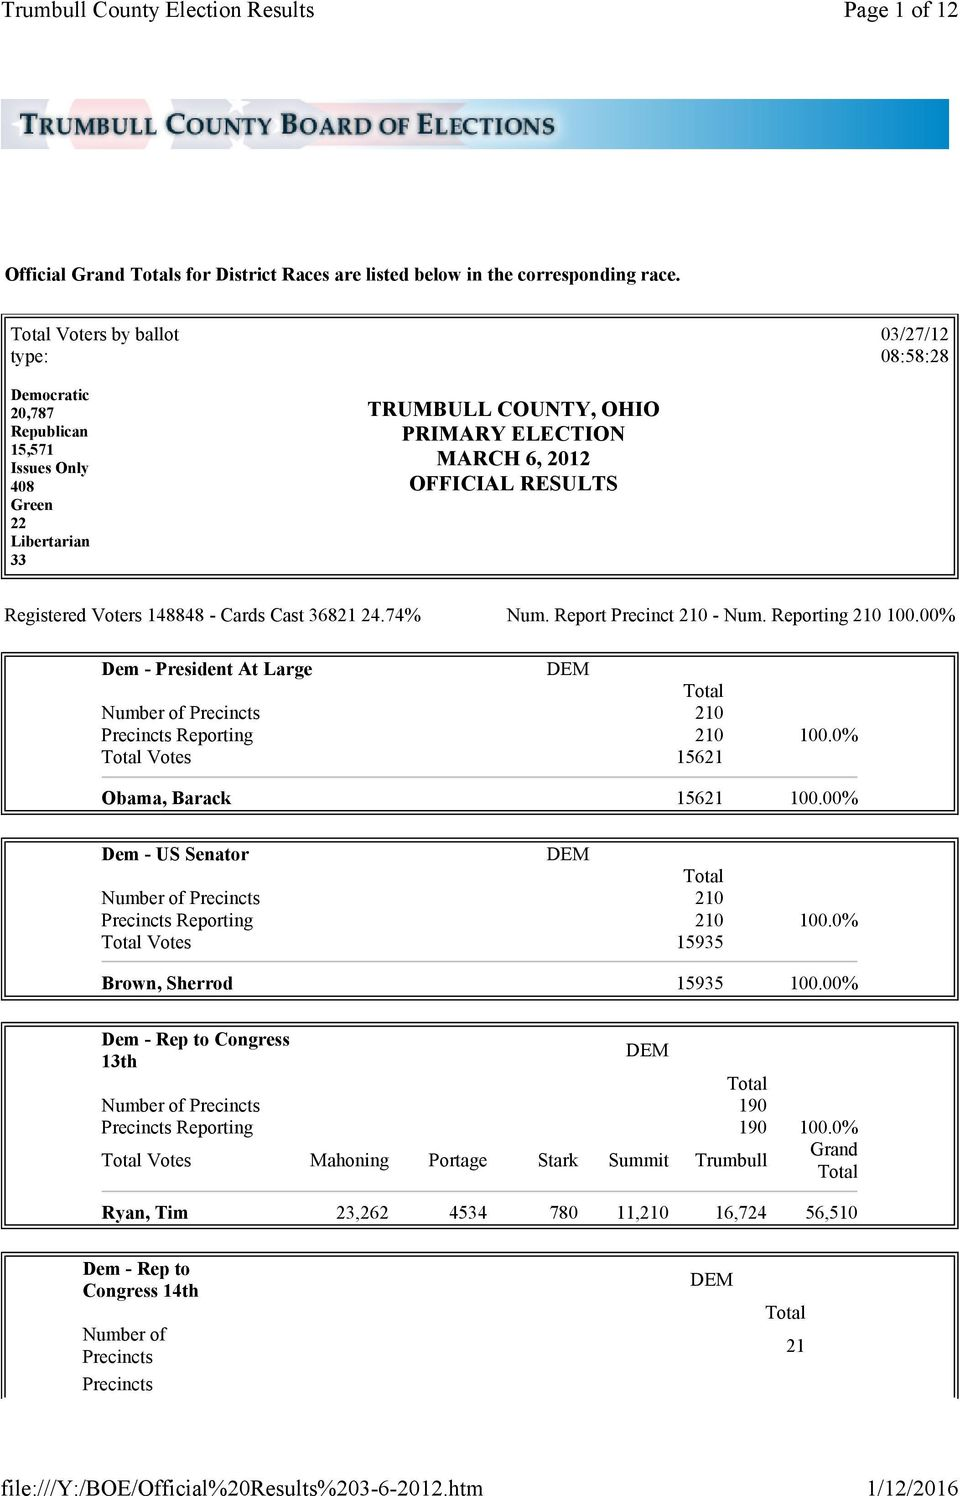 OFFICIAL RESULTS Registered Voters 148848 - Cards Cast 36821 24.74% Num. Report Precinct 210 - Num. Reporting 210 100.